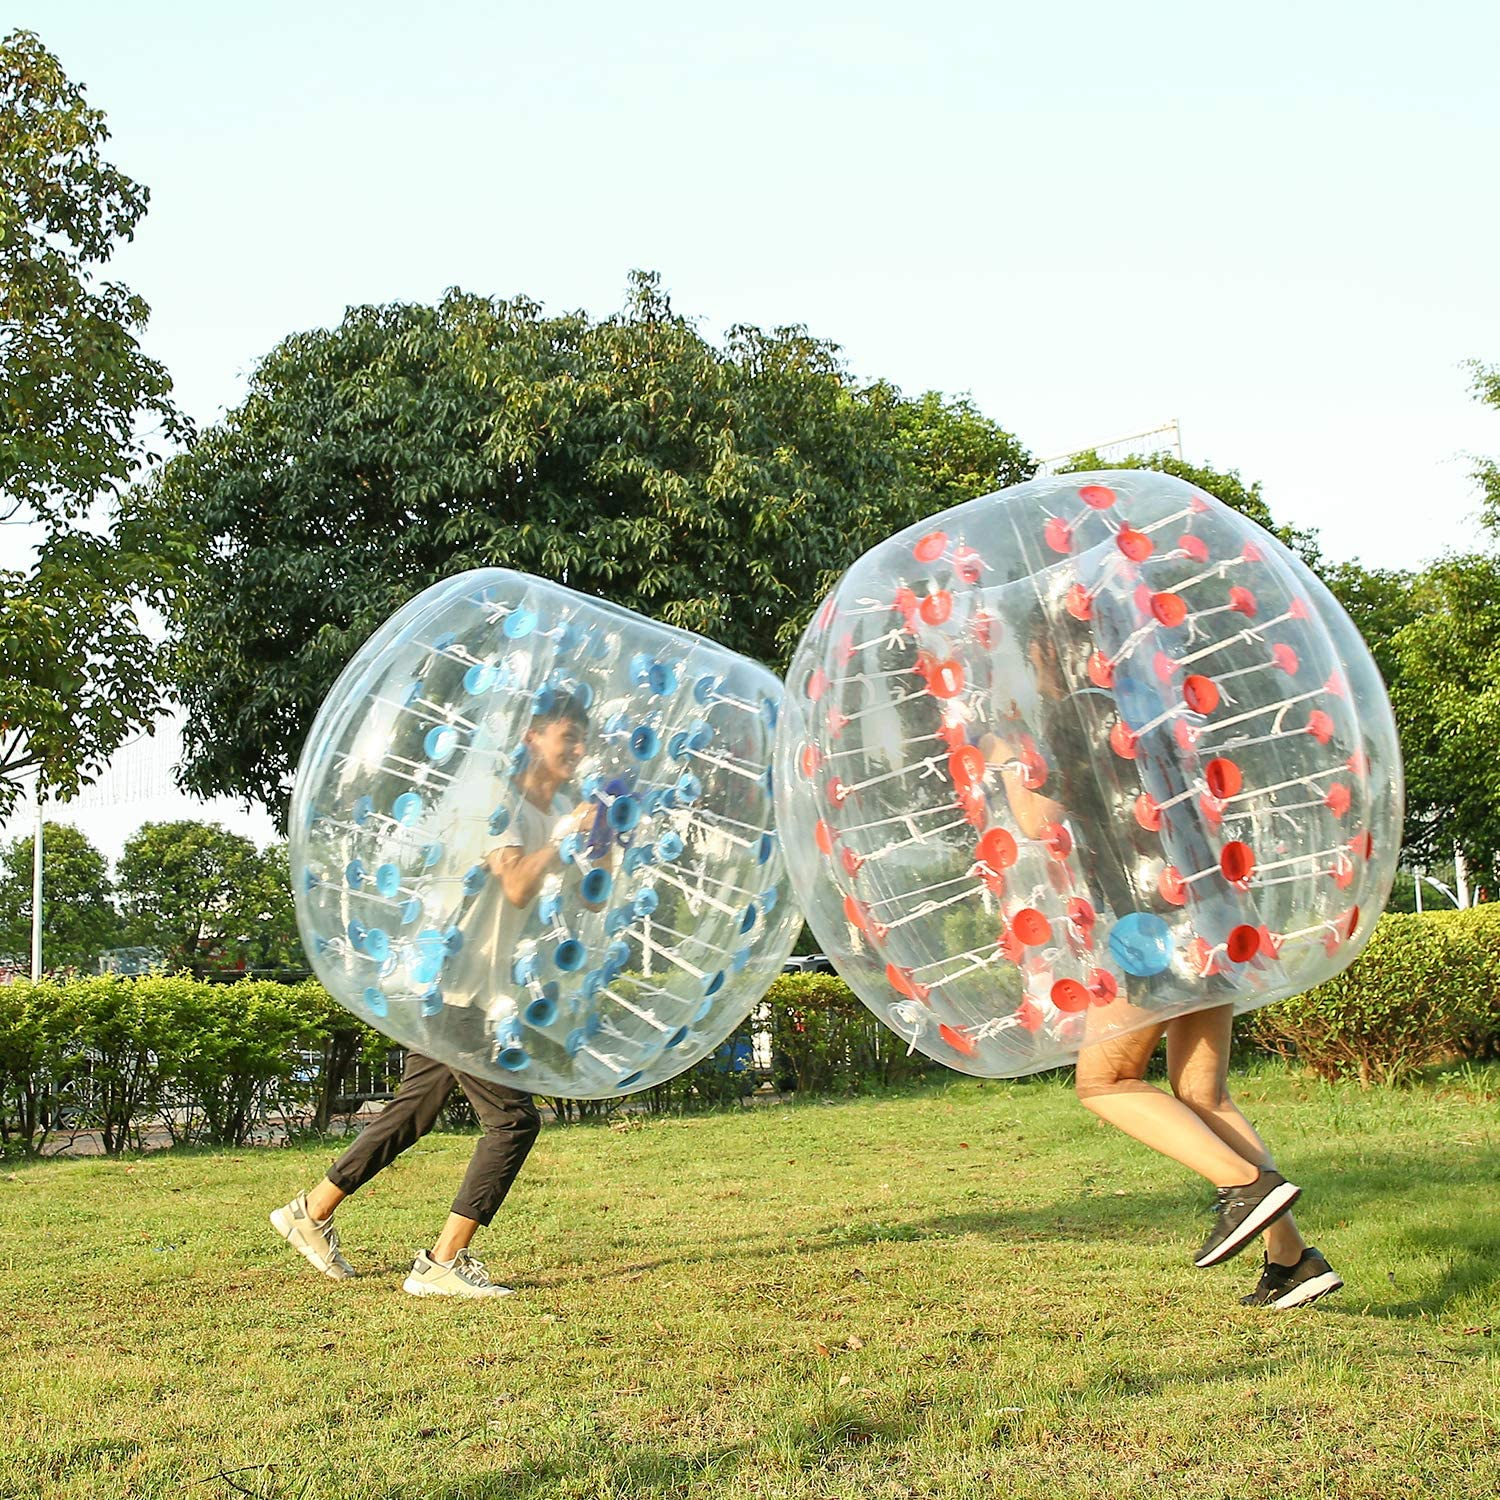 1.5m Ludosport Inflatable Bumper Bubble Balls Soccer Ball Dia Giant Human Hamster Knocker Ball 5 FT Body Zorb Ball for Adults /& Teens Outdoor Team Gaming Play